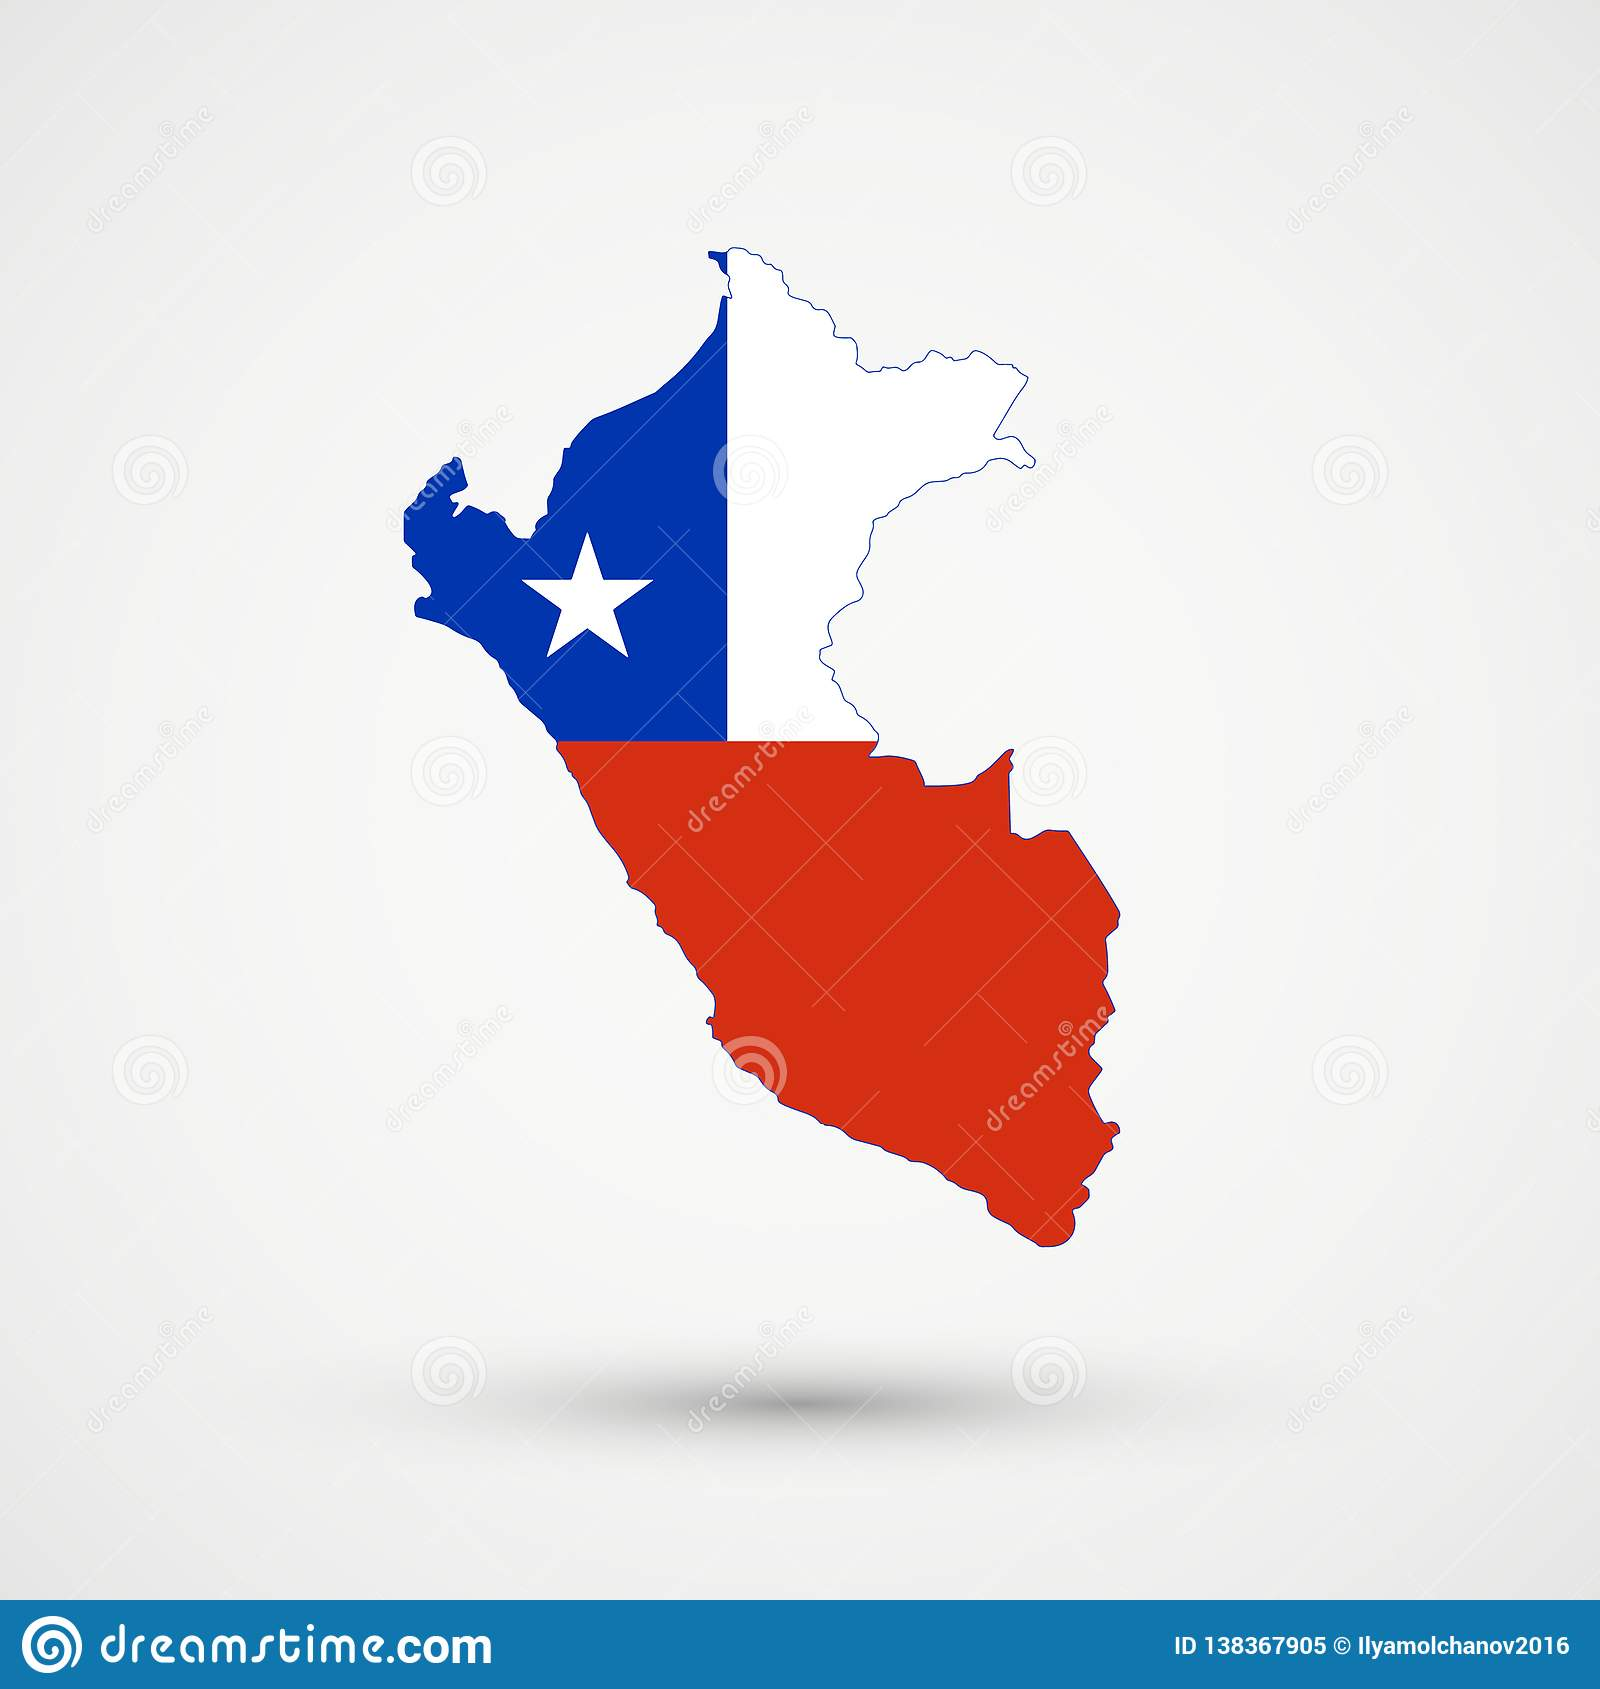 Peru Map In Chile Flag Colors, Editable Vector Stock Vector ... Chile Flag Map on